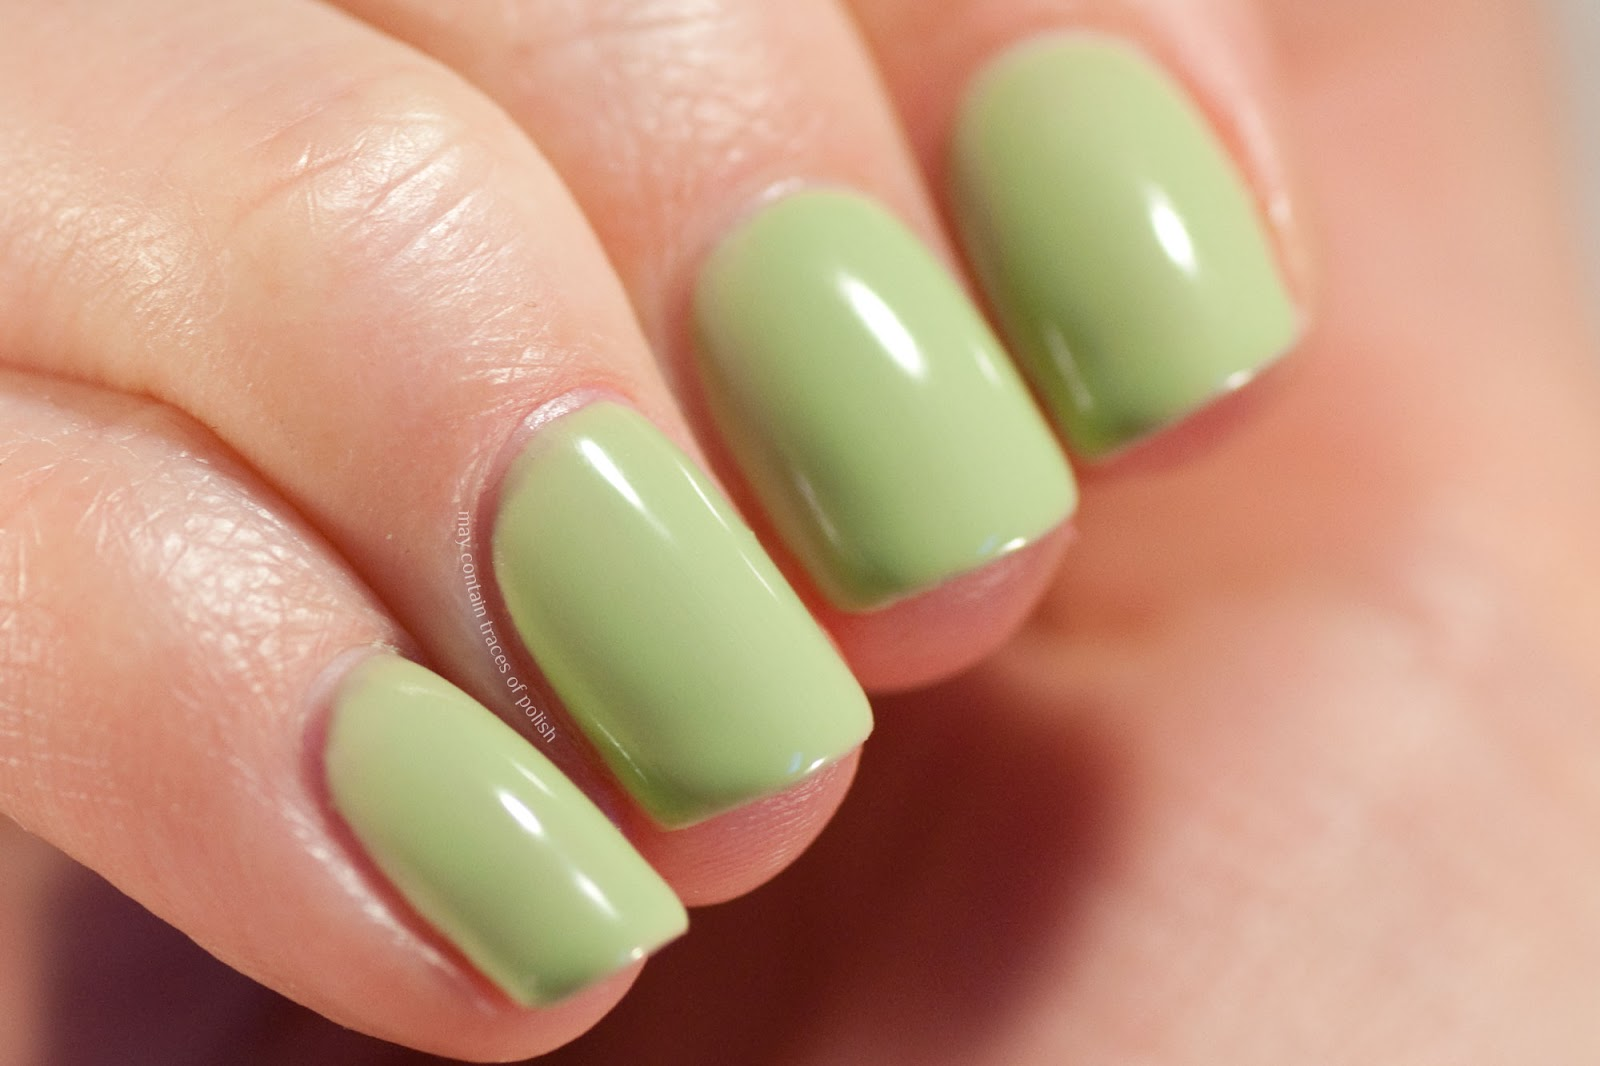 Pink Gellac 284 Spring Green Felicity Collection